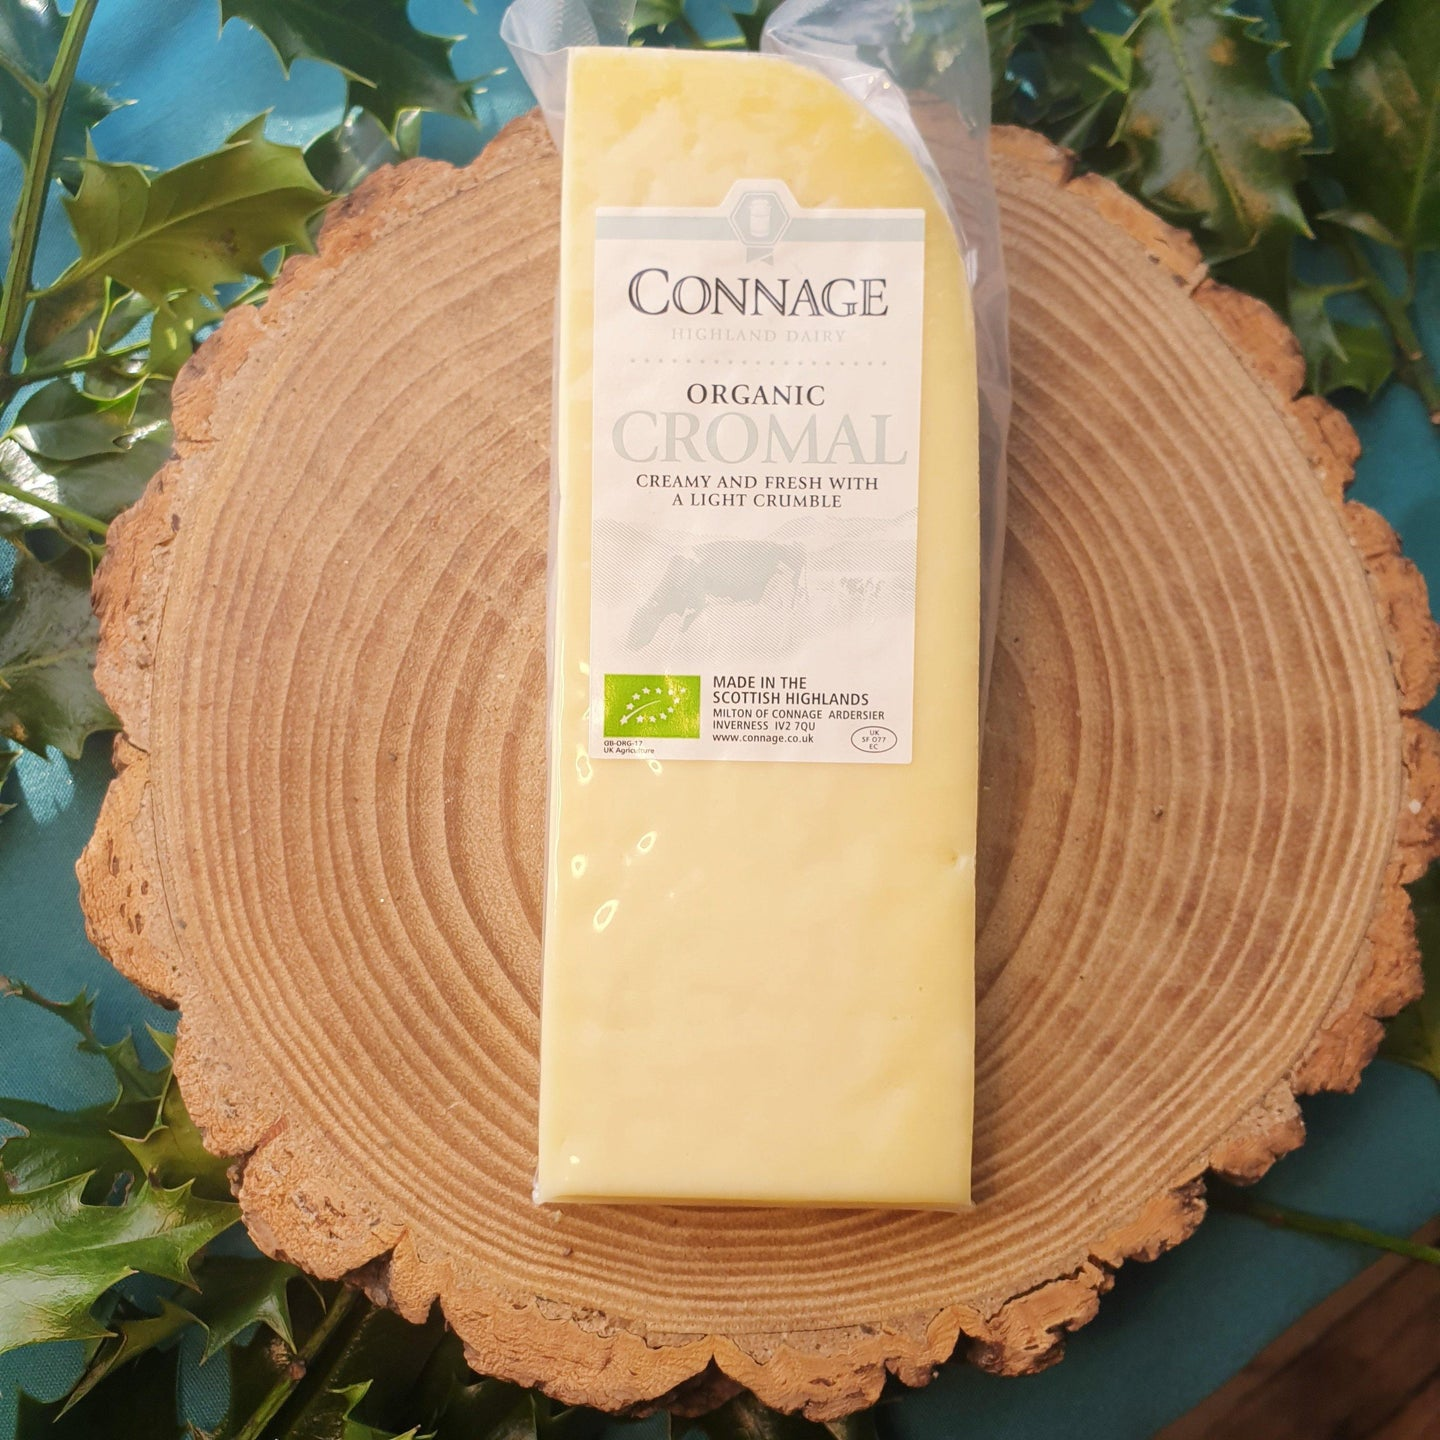 Connage Highland Dairy Organic 'Cromal'